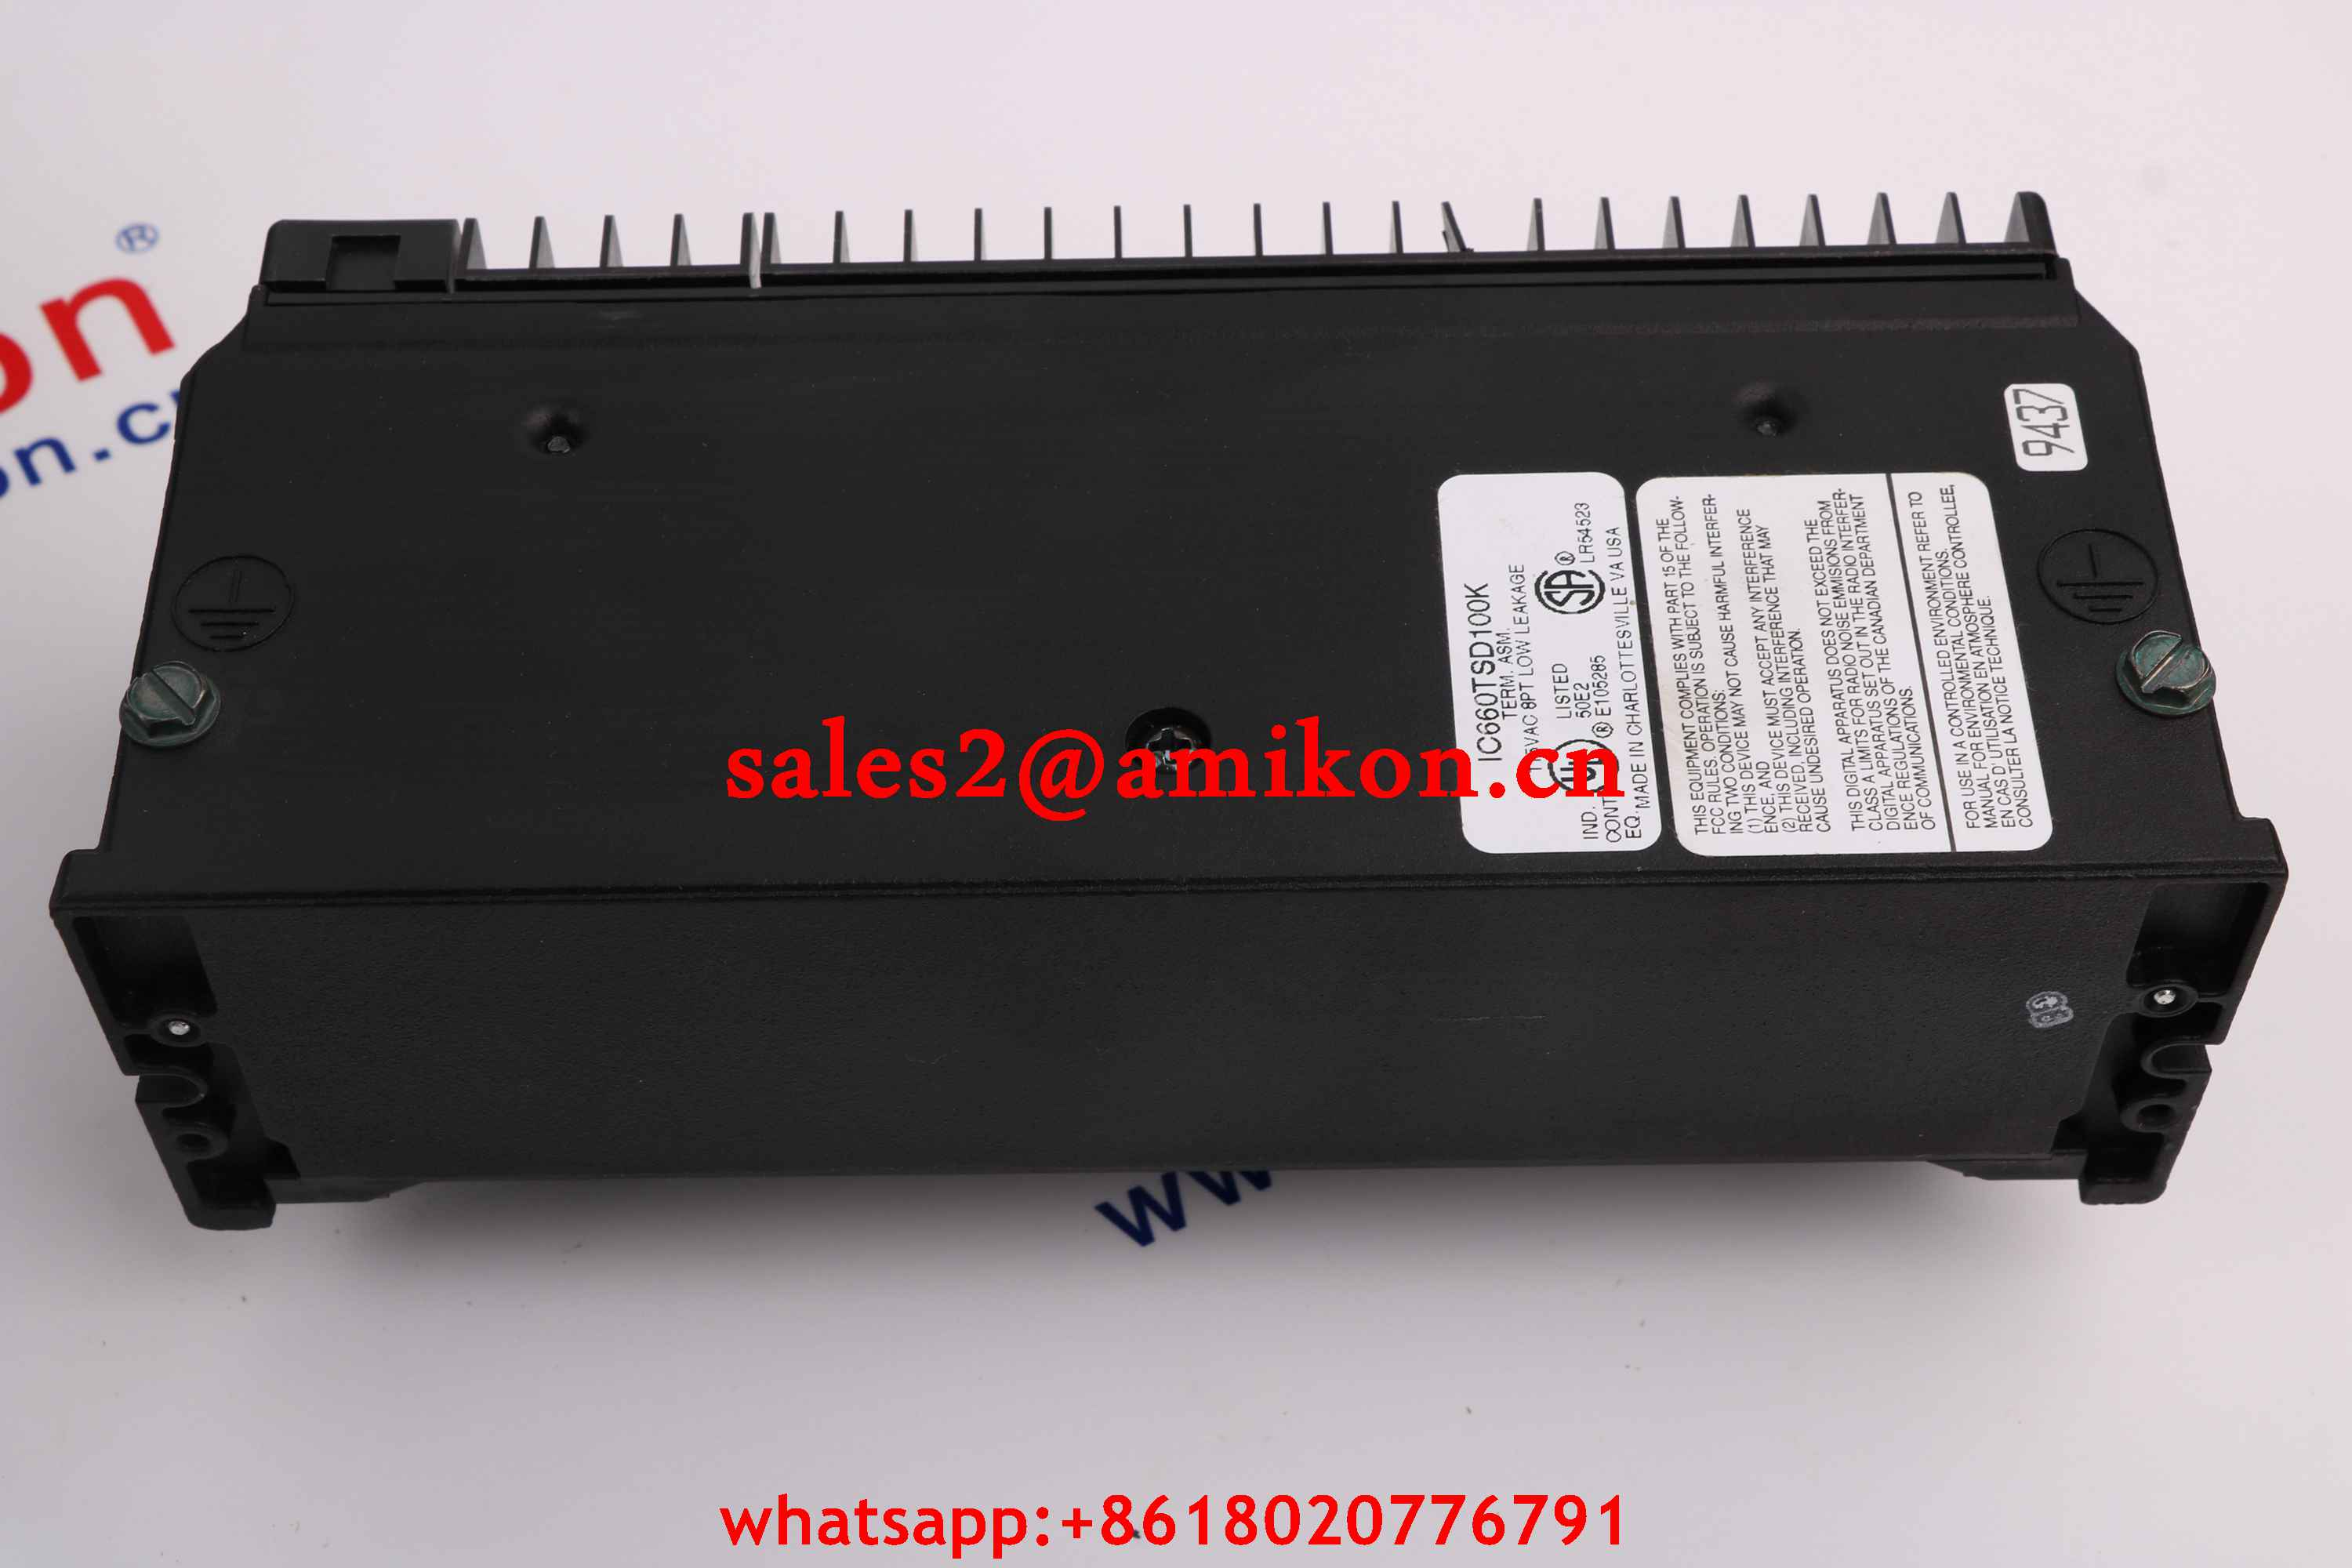 GE FANUC DS3880EPSA1A1A  new and Original USA 1 year warranty